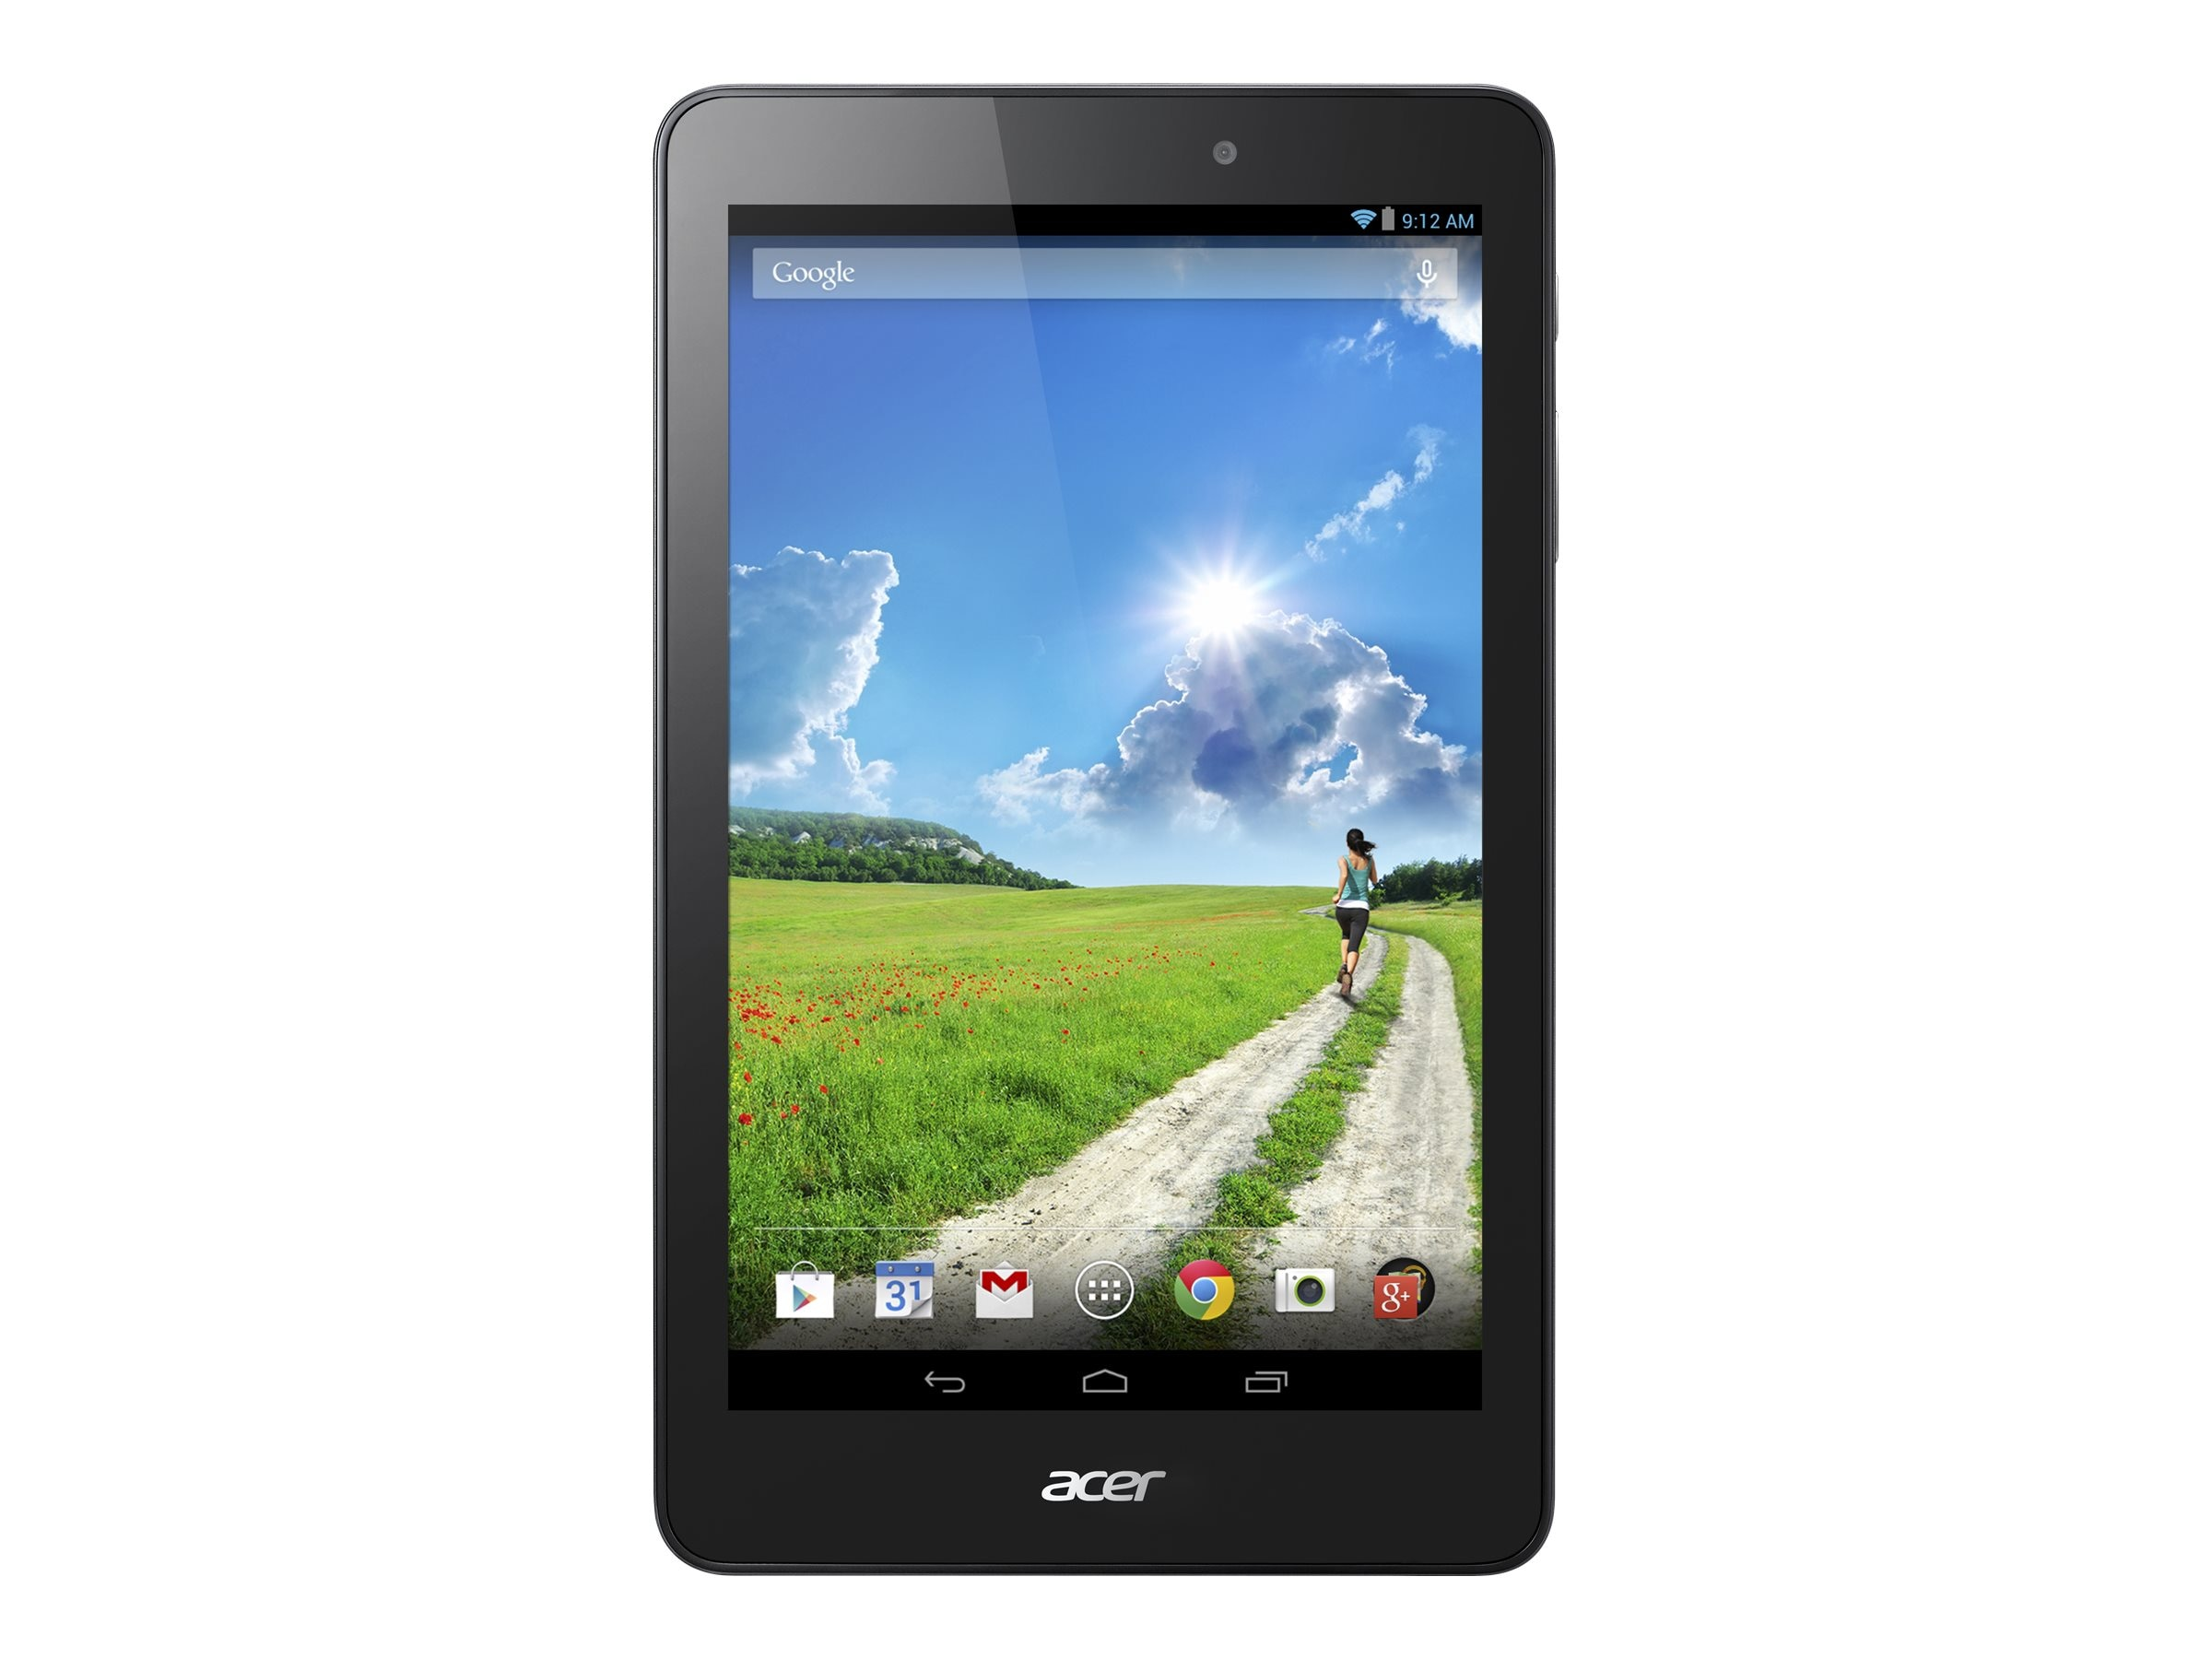 Acer Iconia B1-810-11QT 1.33GHz processor Android 4.4 (KitKat)